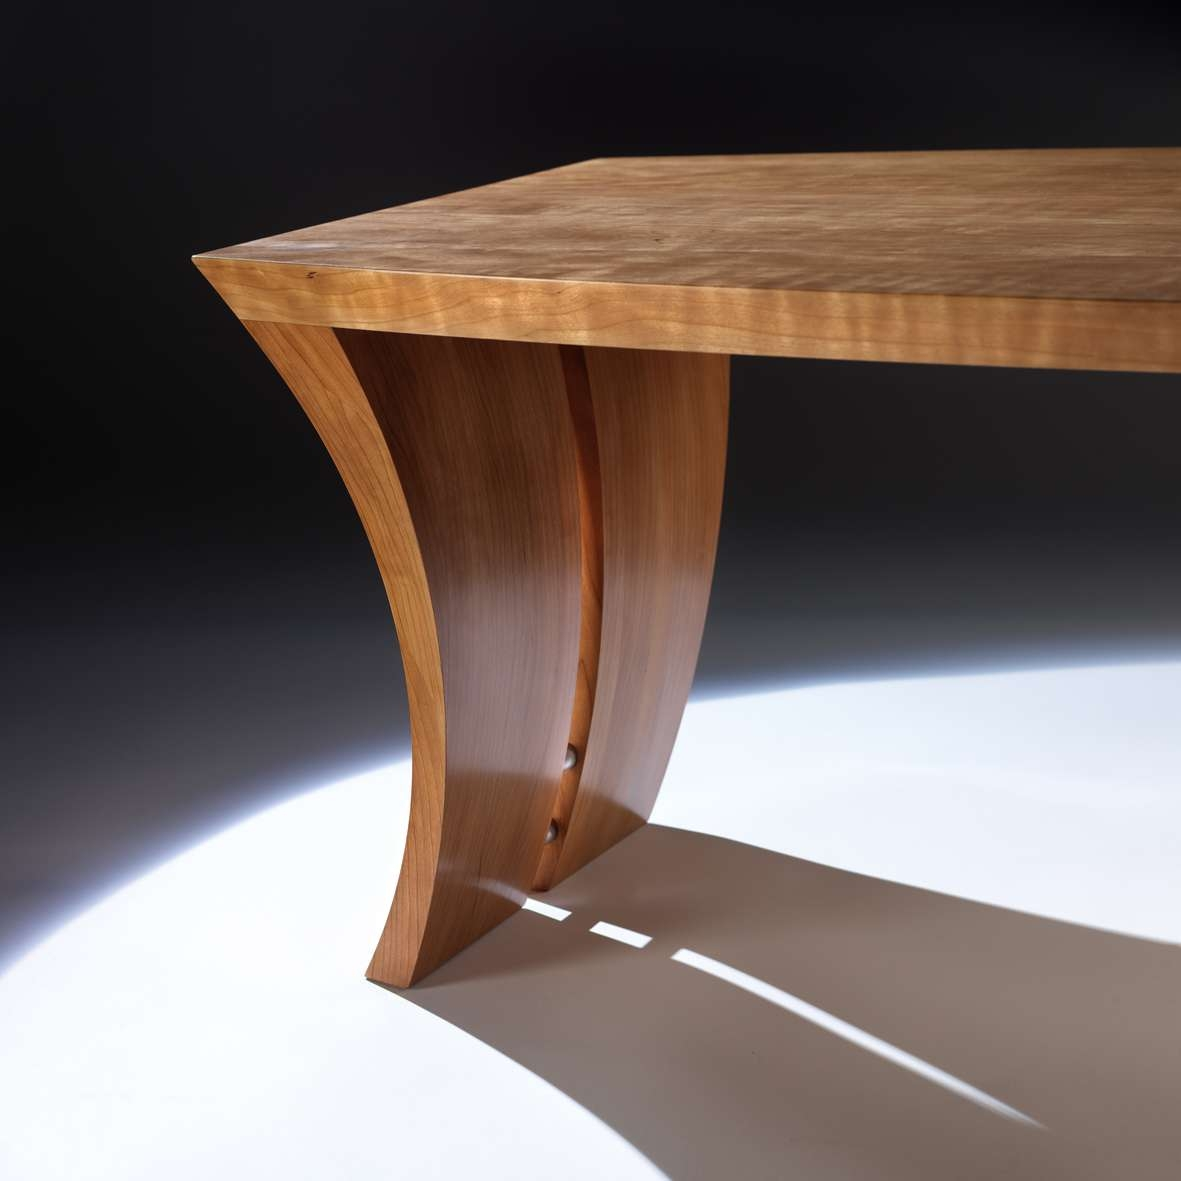 Fashionable Bespoke Coffee Tables With Regard To Contemporary Bespoke Coffee Table (View 8 of 20)